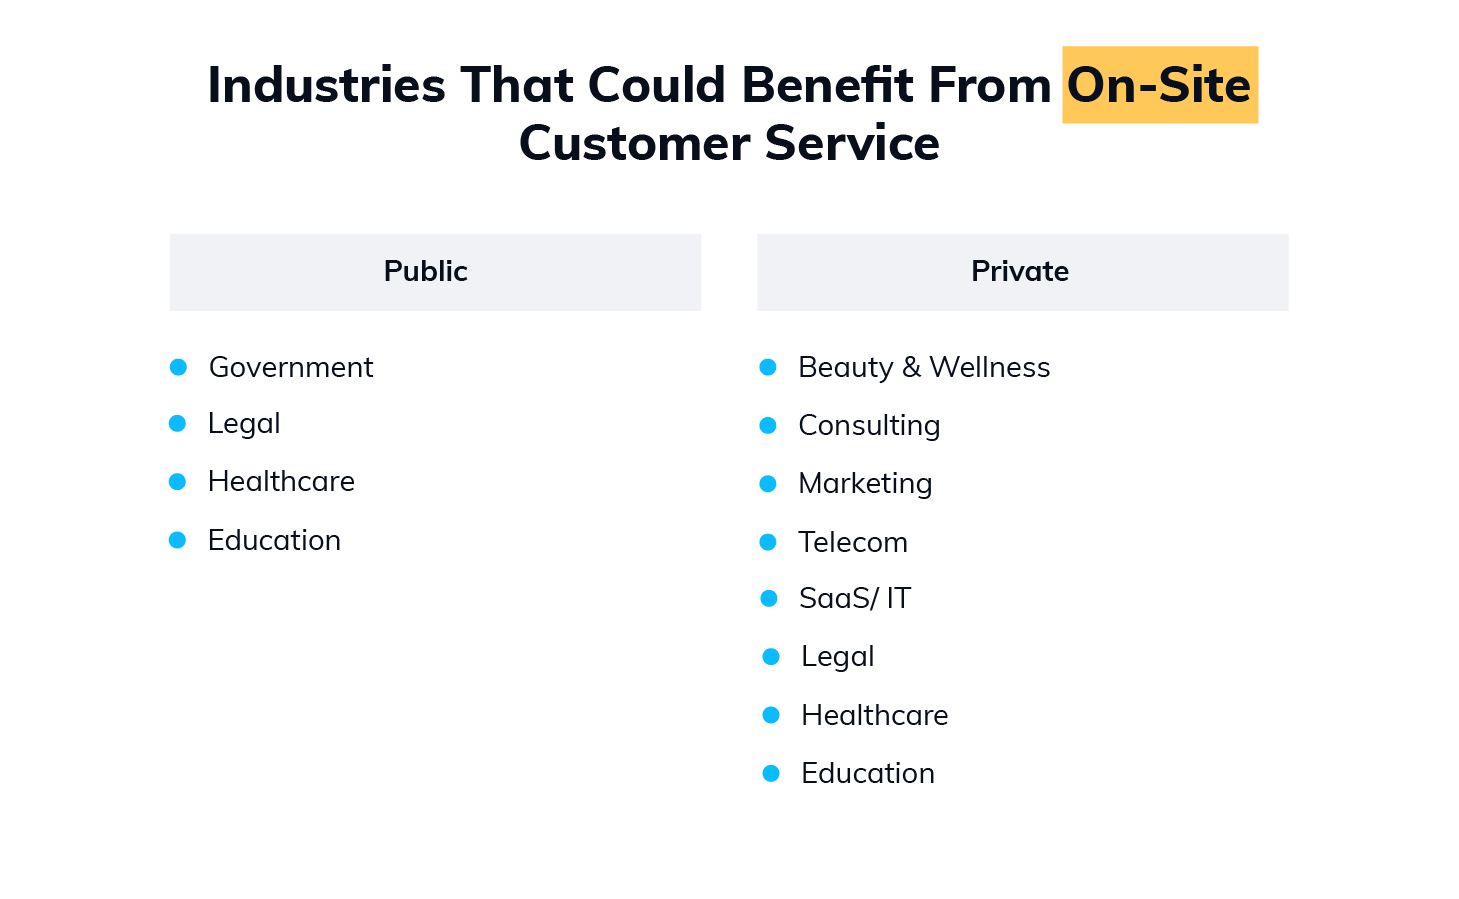 What Industries Would Benefit from On-Site Customer Service the Most